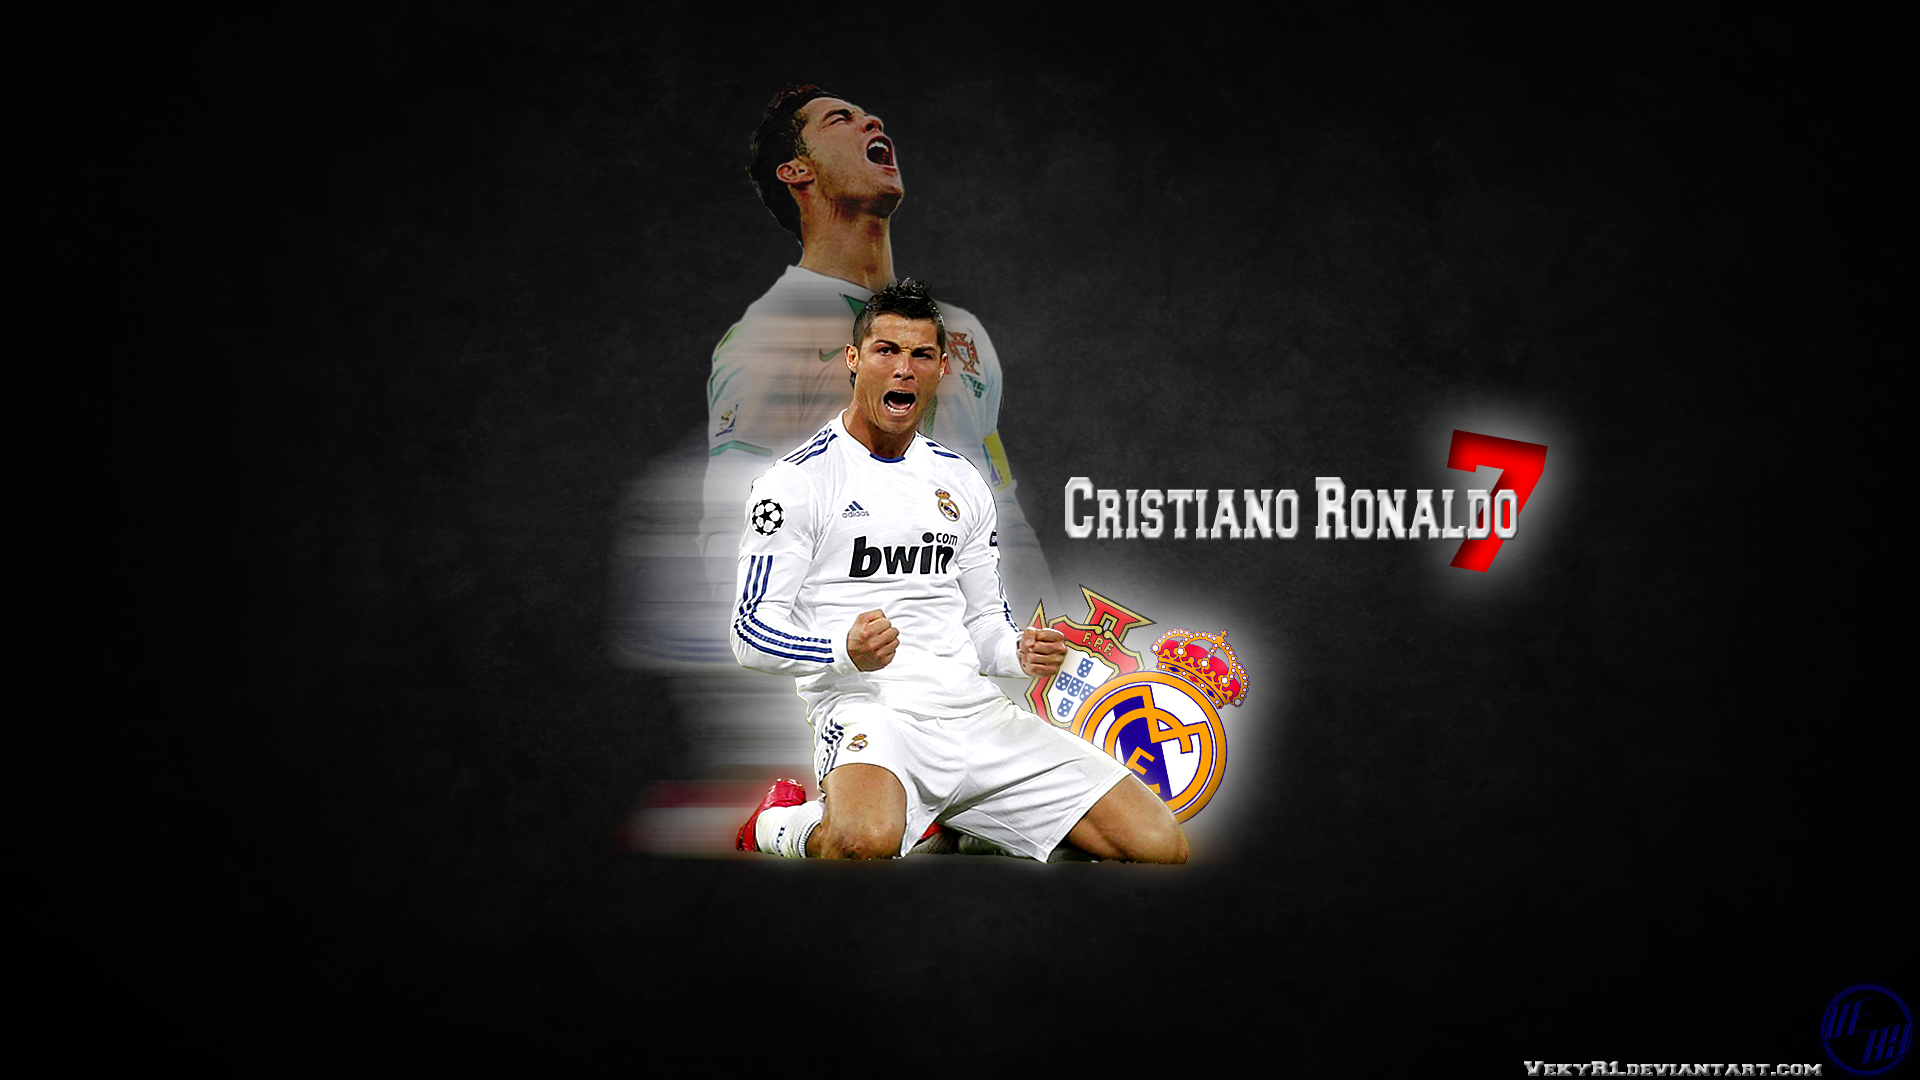 Cristiano ronaldo real portuagal wallpaper by vekyr1 on deviantart cristiano ronaldo real portuagal wallpaper by vekyr1 voltagebd